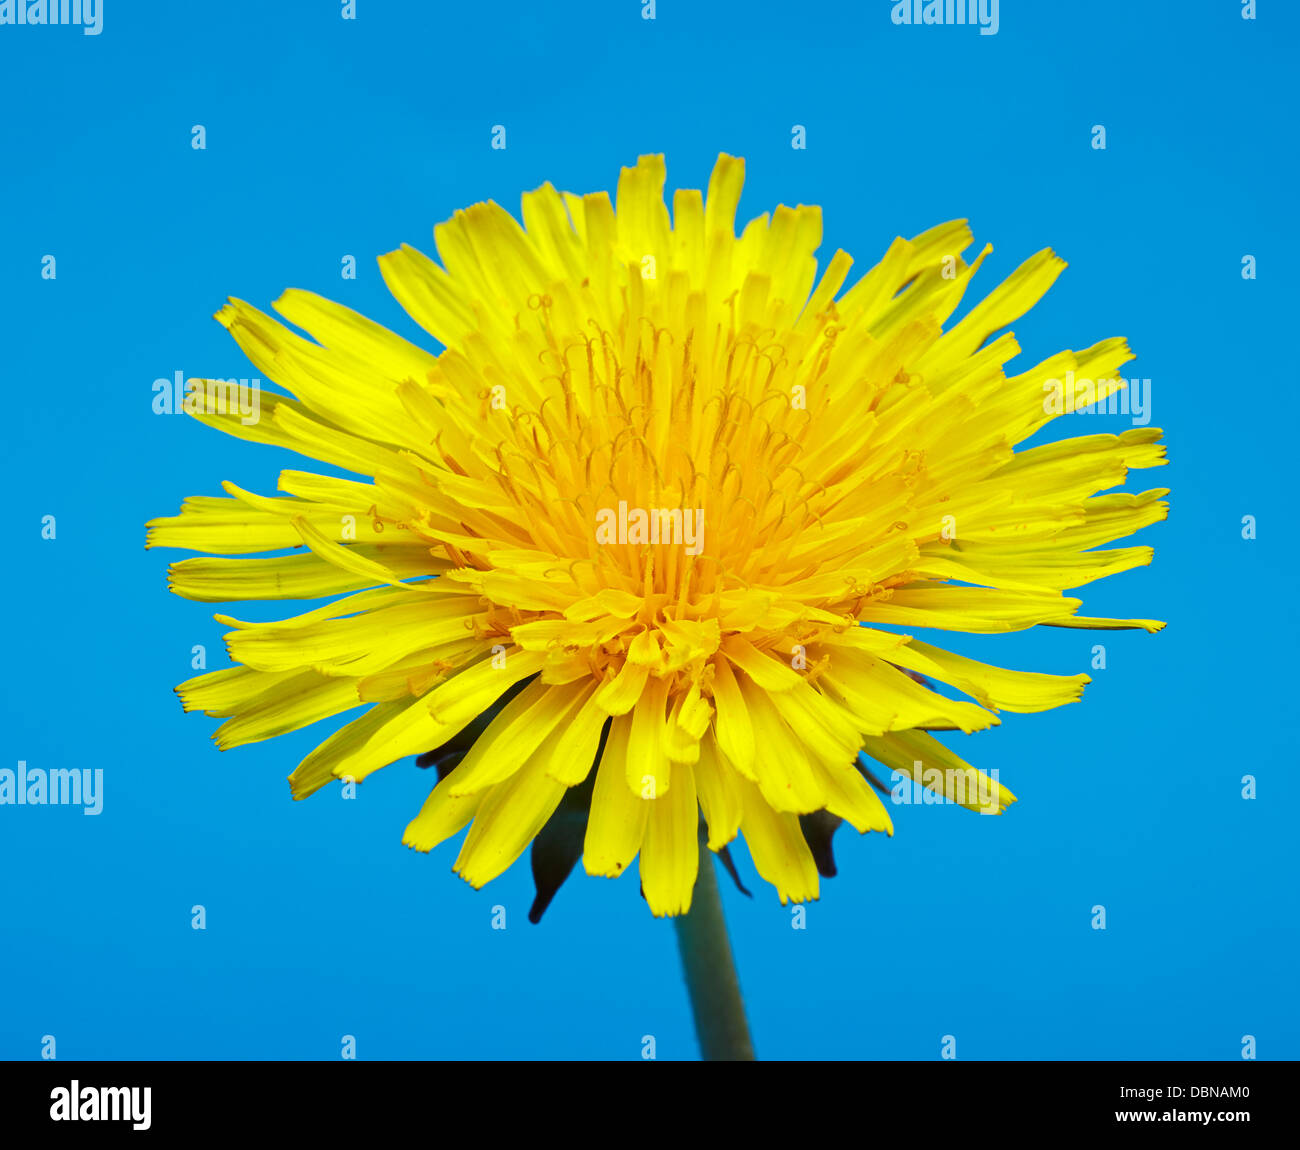 Dandelion flower with blue background - Stock Image